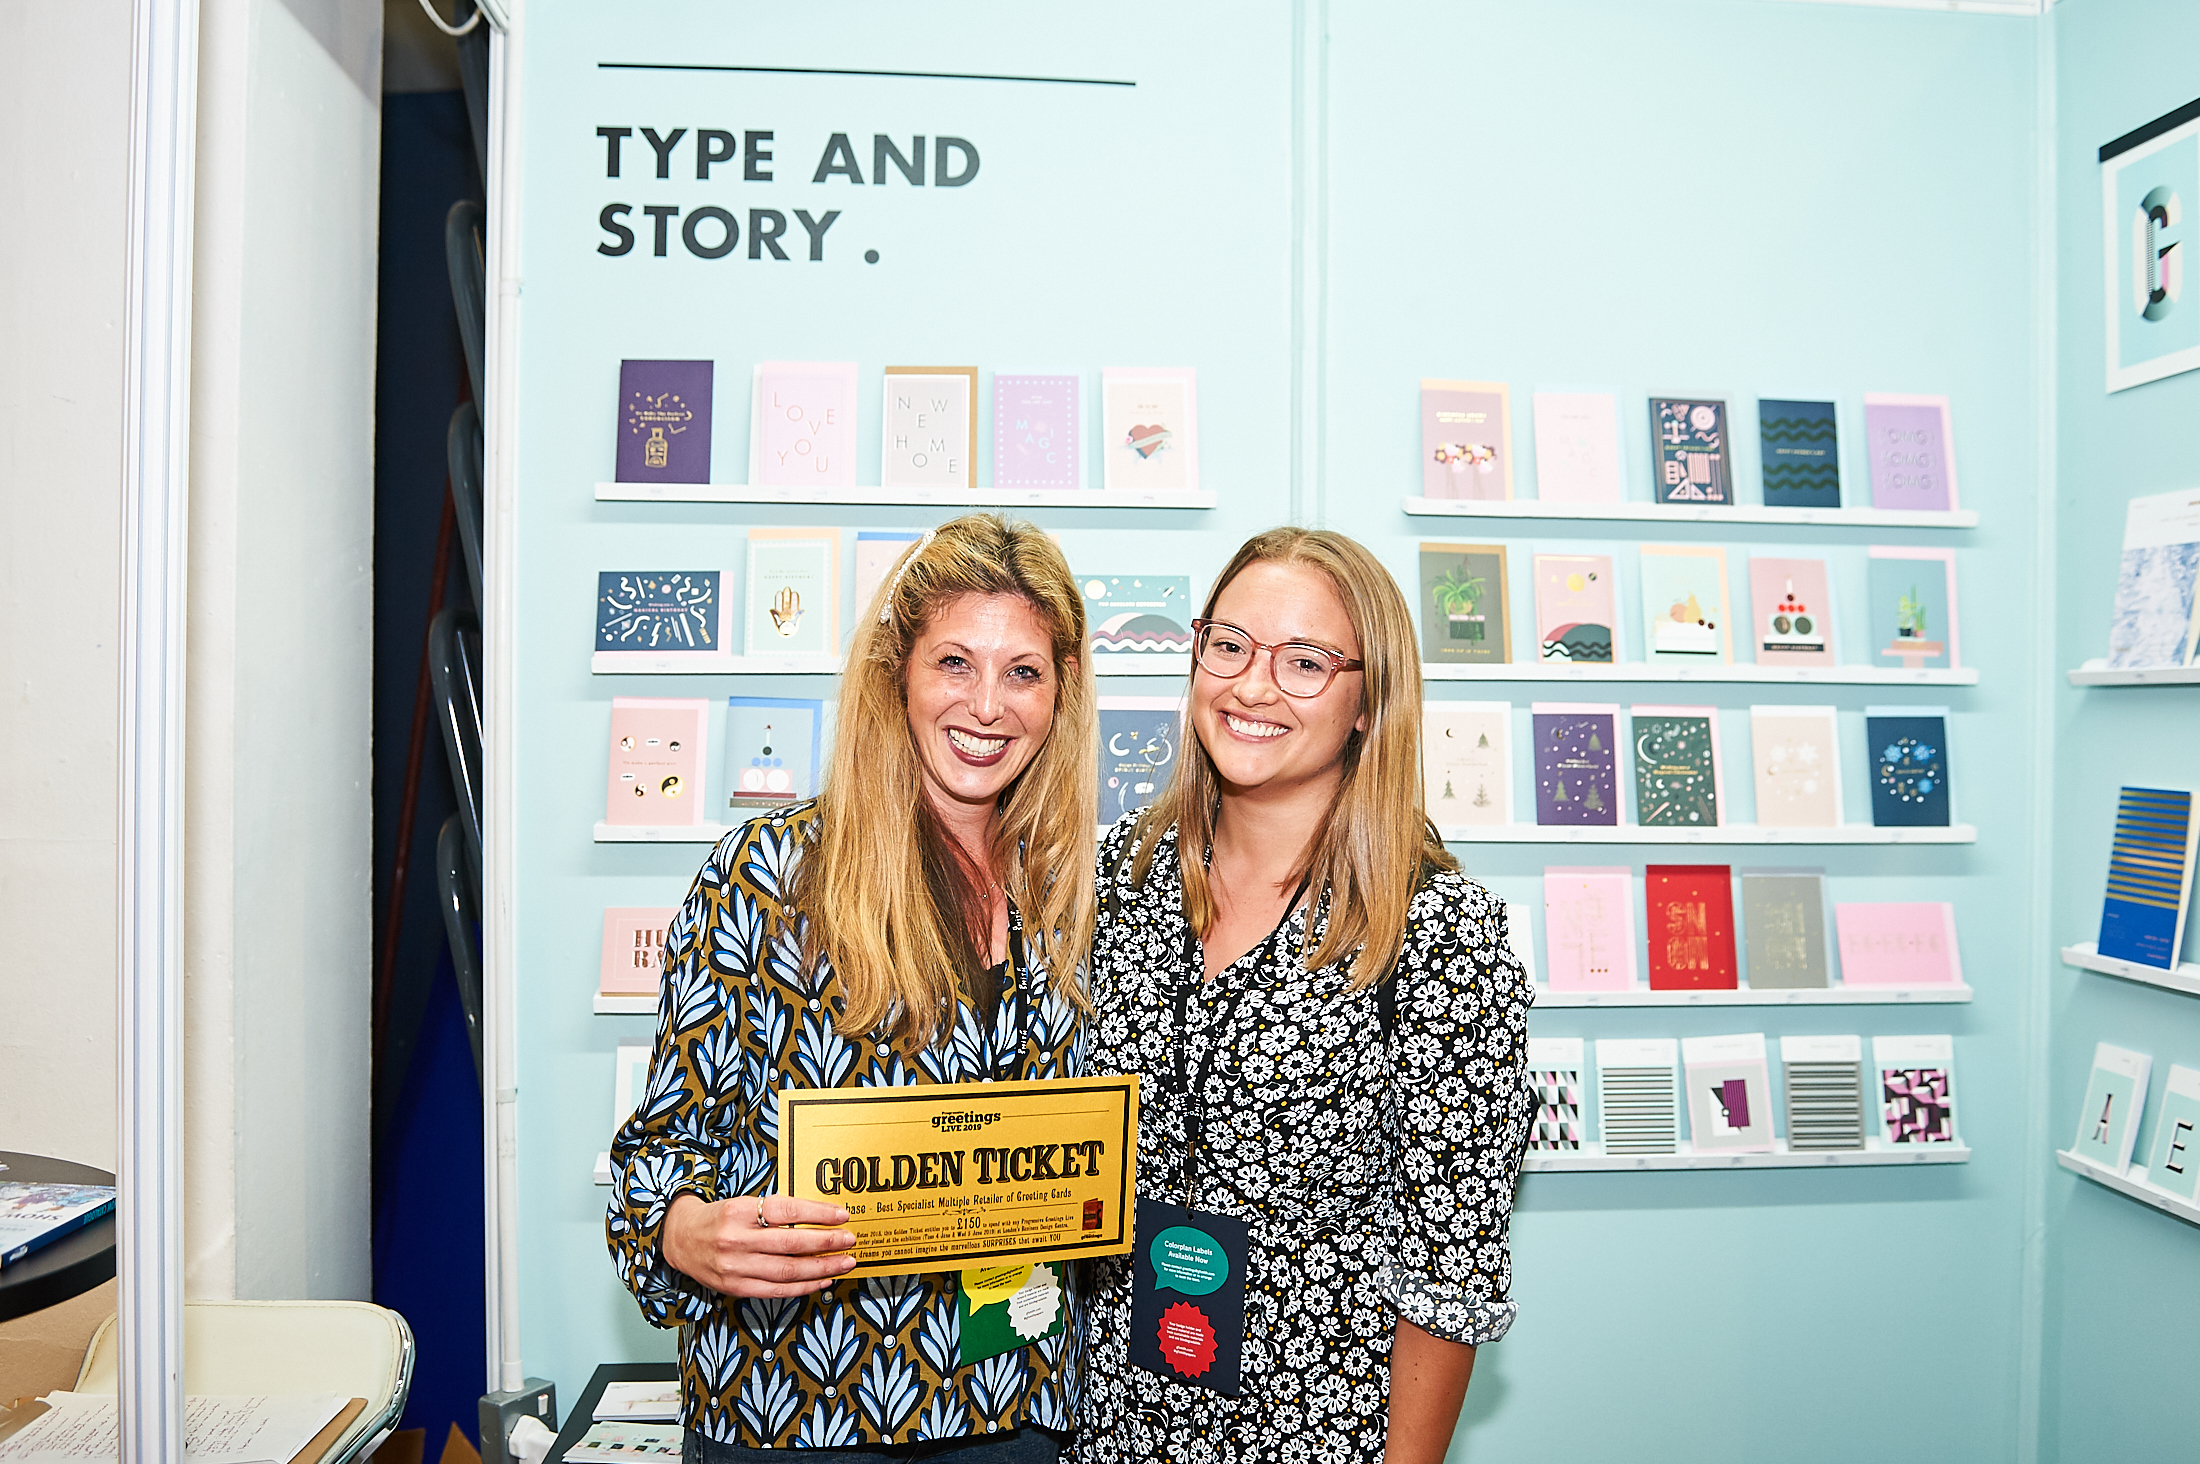 Above: Paperchase's Natalie Alexander, senior card buyer for Paperchase (right) with Type and Story's Niccy Iseman at PG LIve.